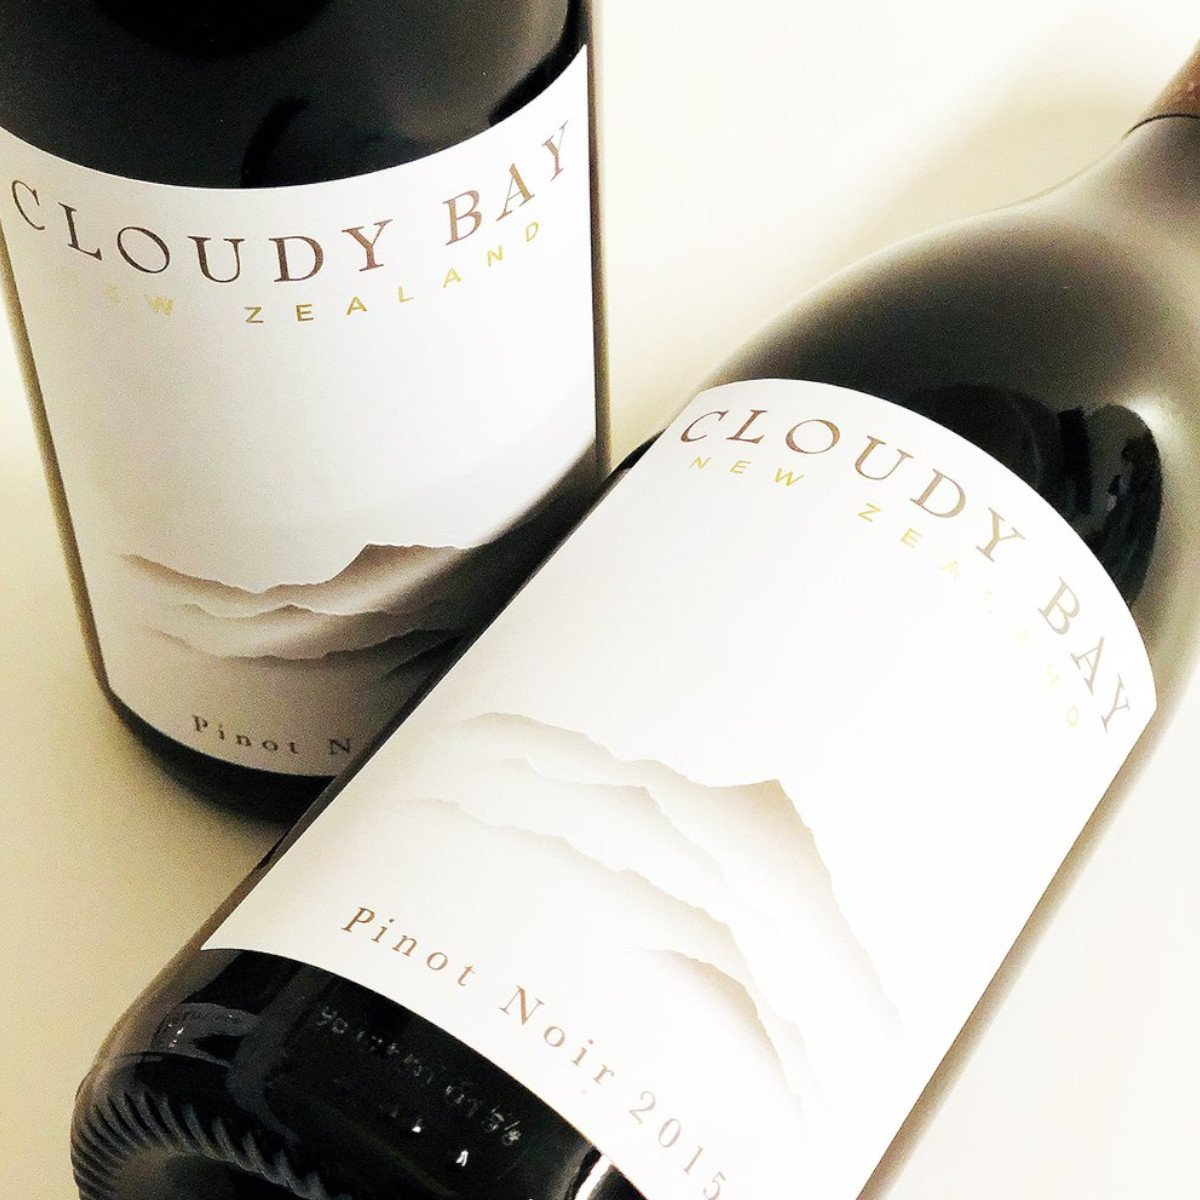 Cloudy Bay Pinot Noir 2018 – wine review